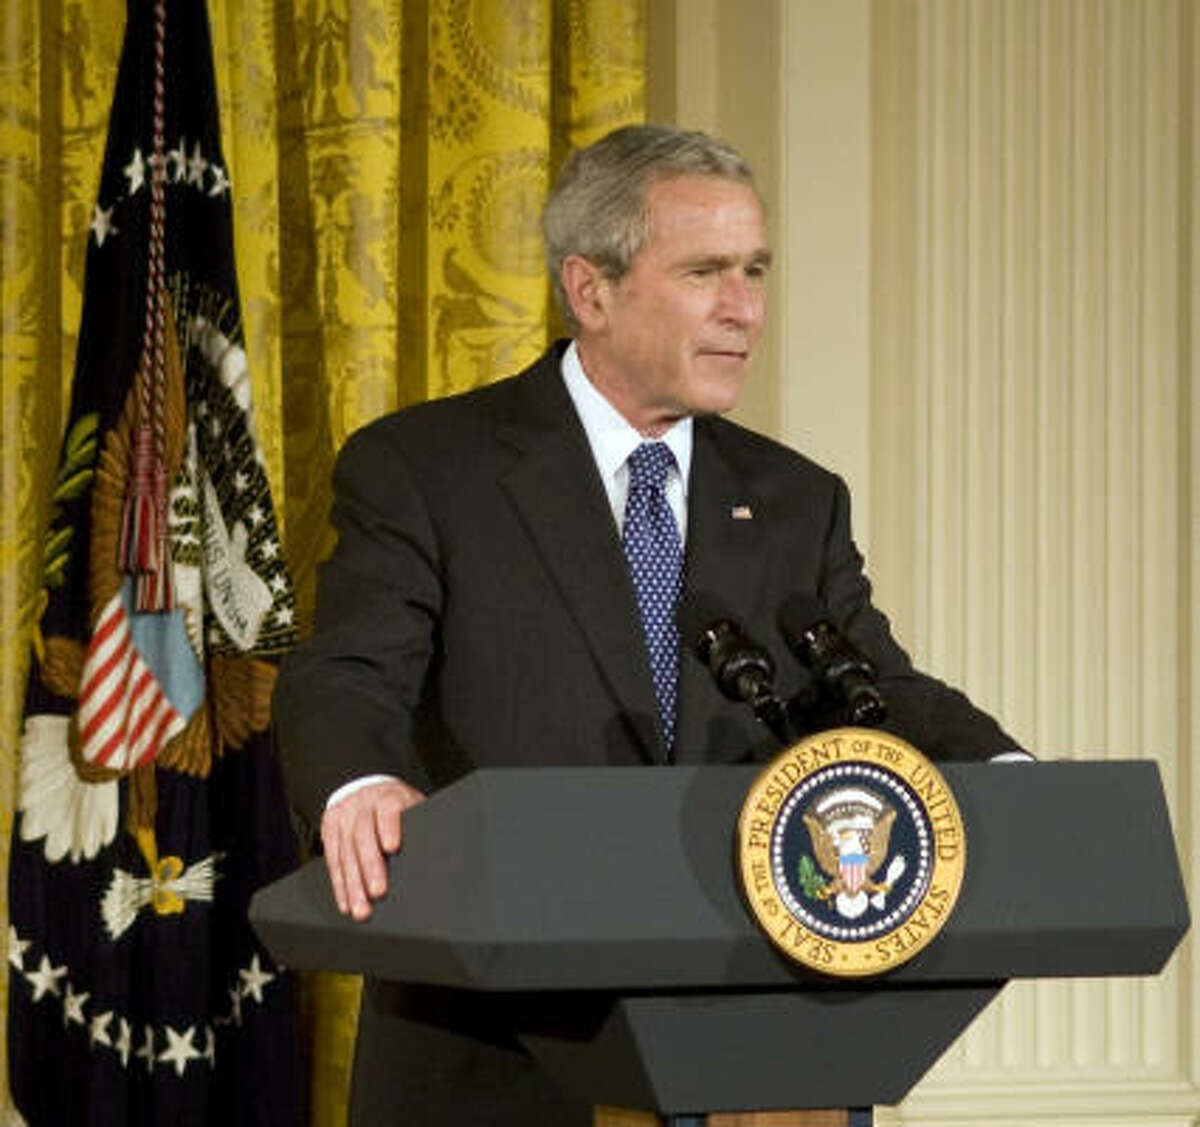 President George W. Bush is shown speaking Jan. 7, 2009, in the East Room of the White House.